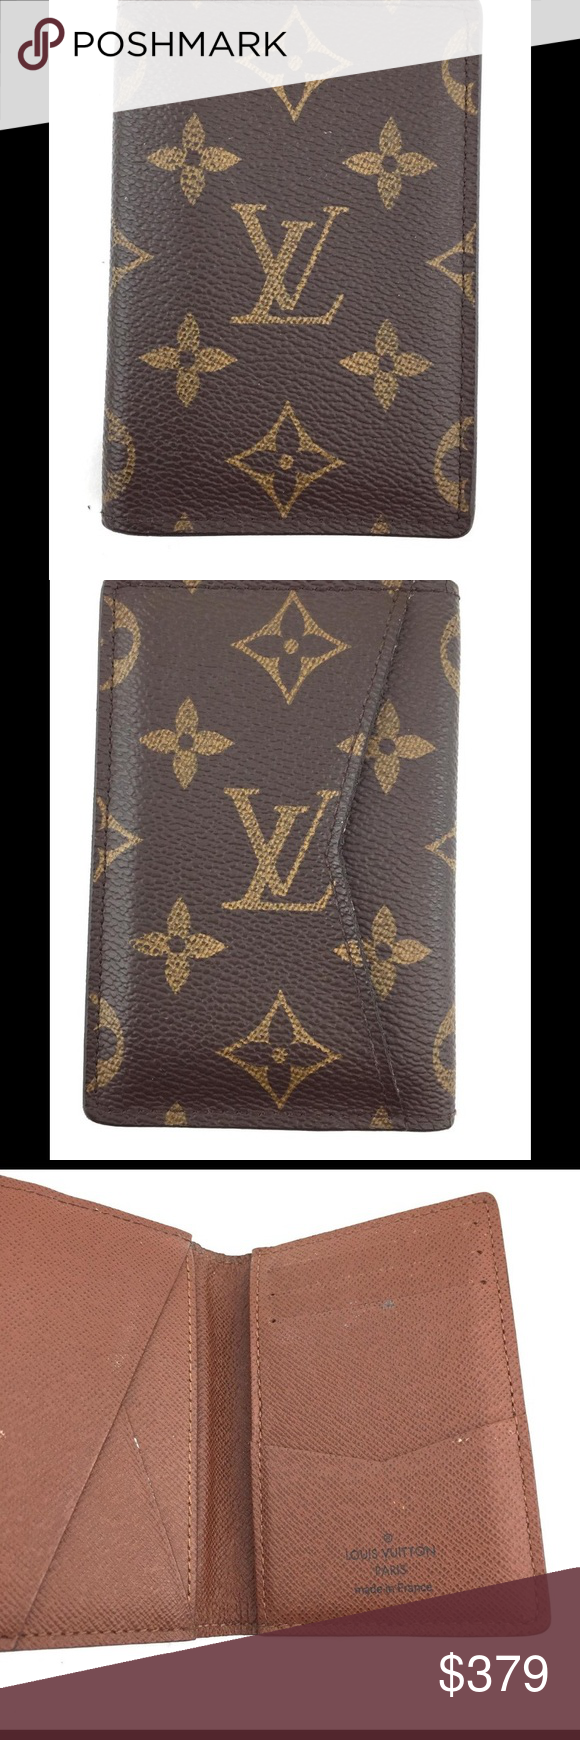 Authentic Louis Vuitton Card Holder in EUC nice! Great item for any ...